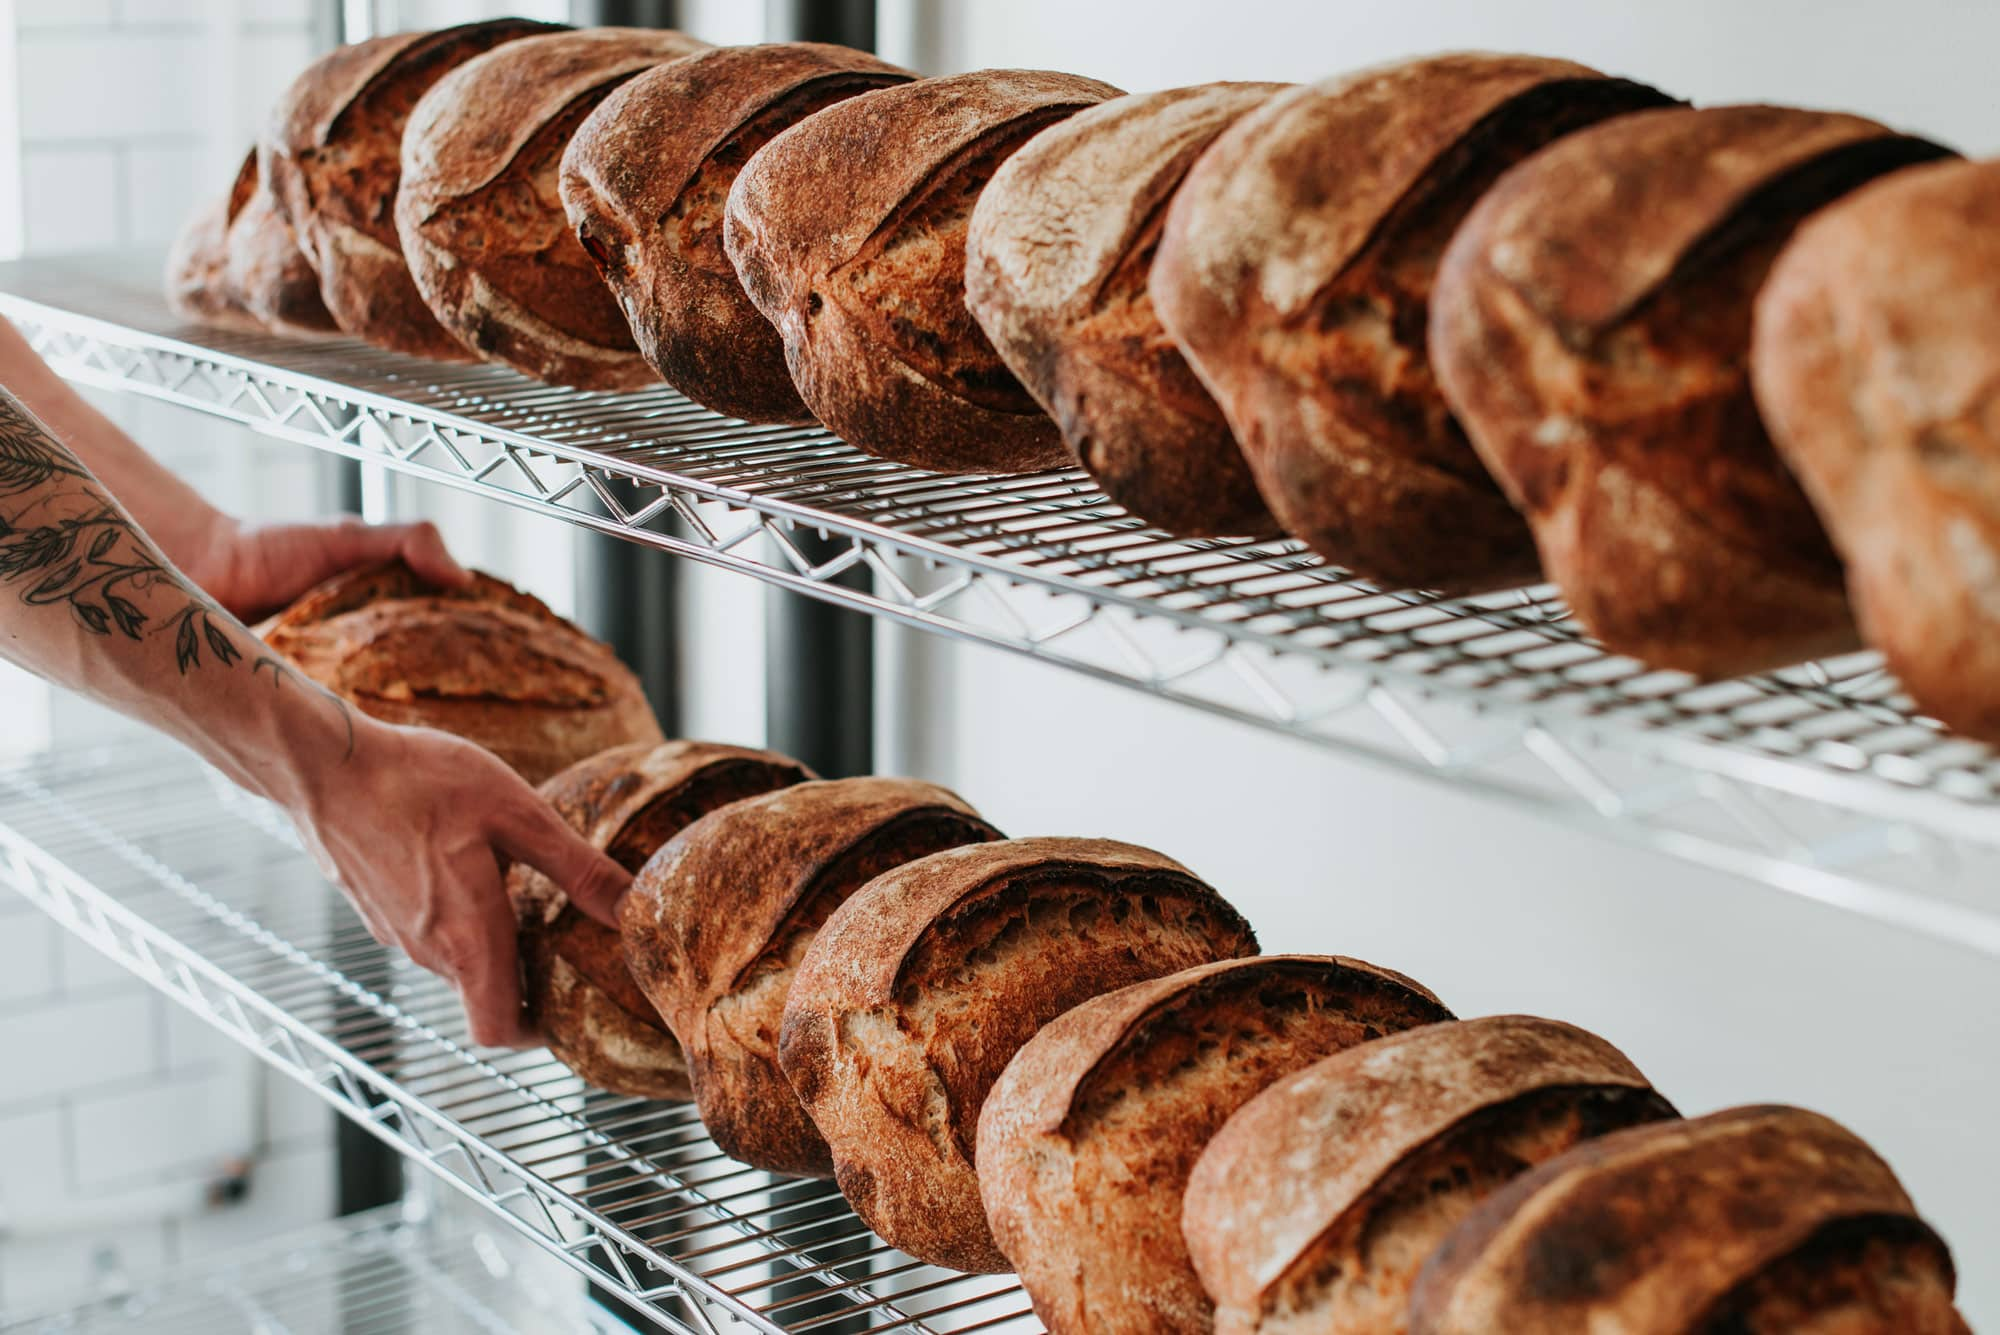 Image of loaves on a rack